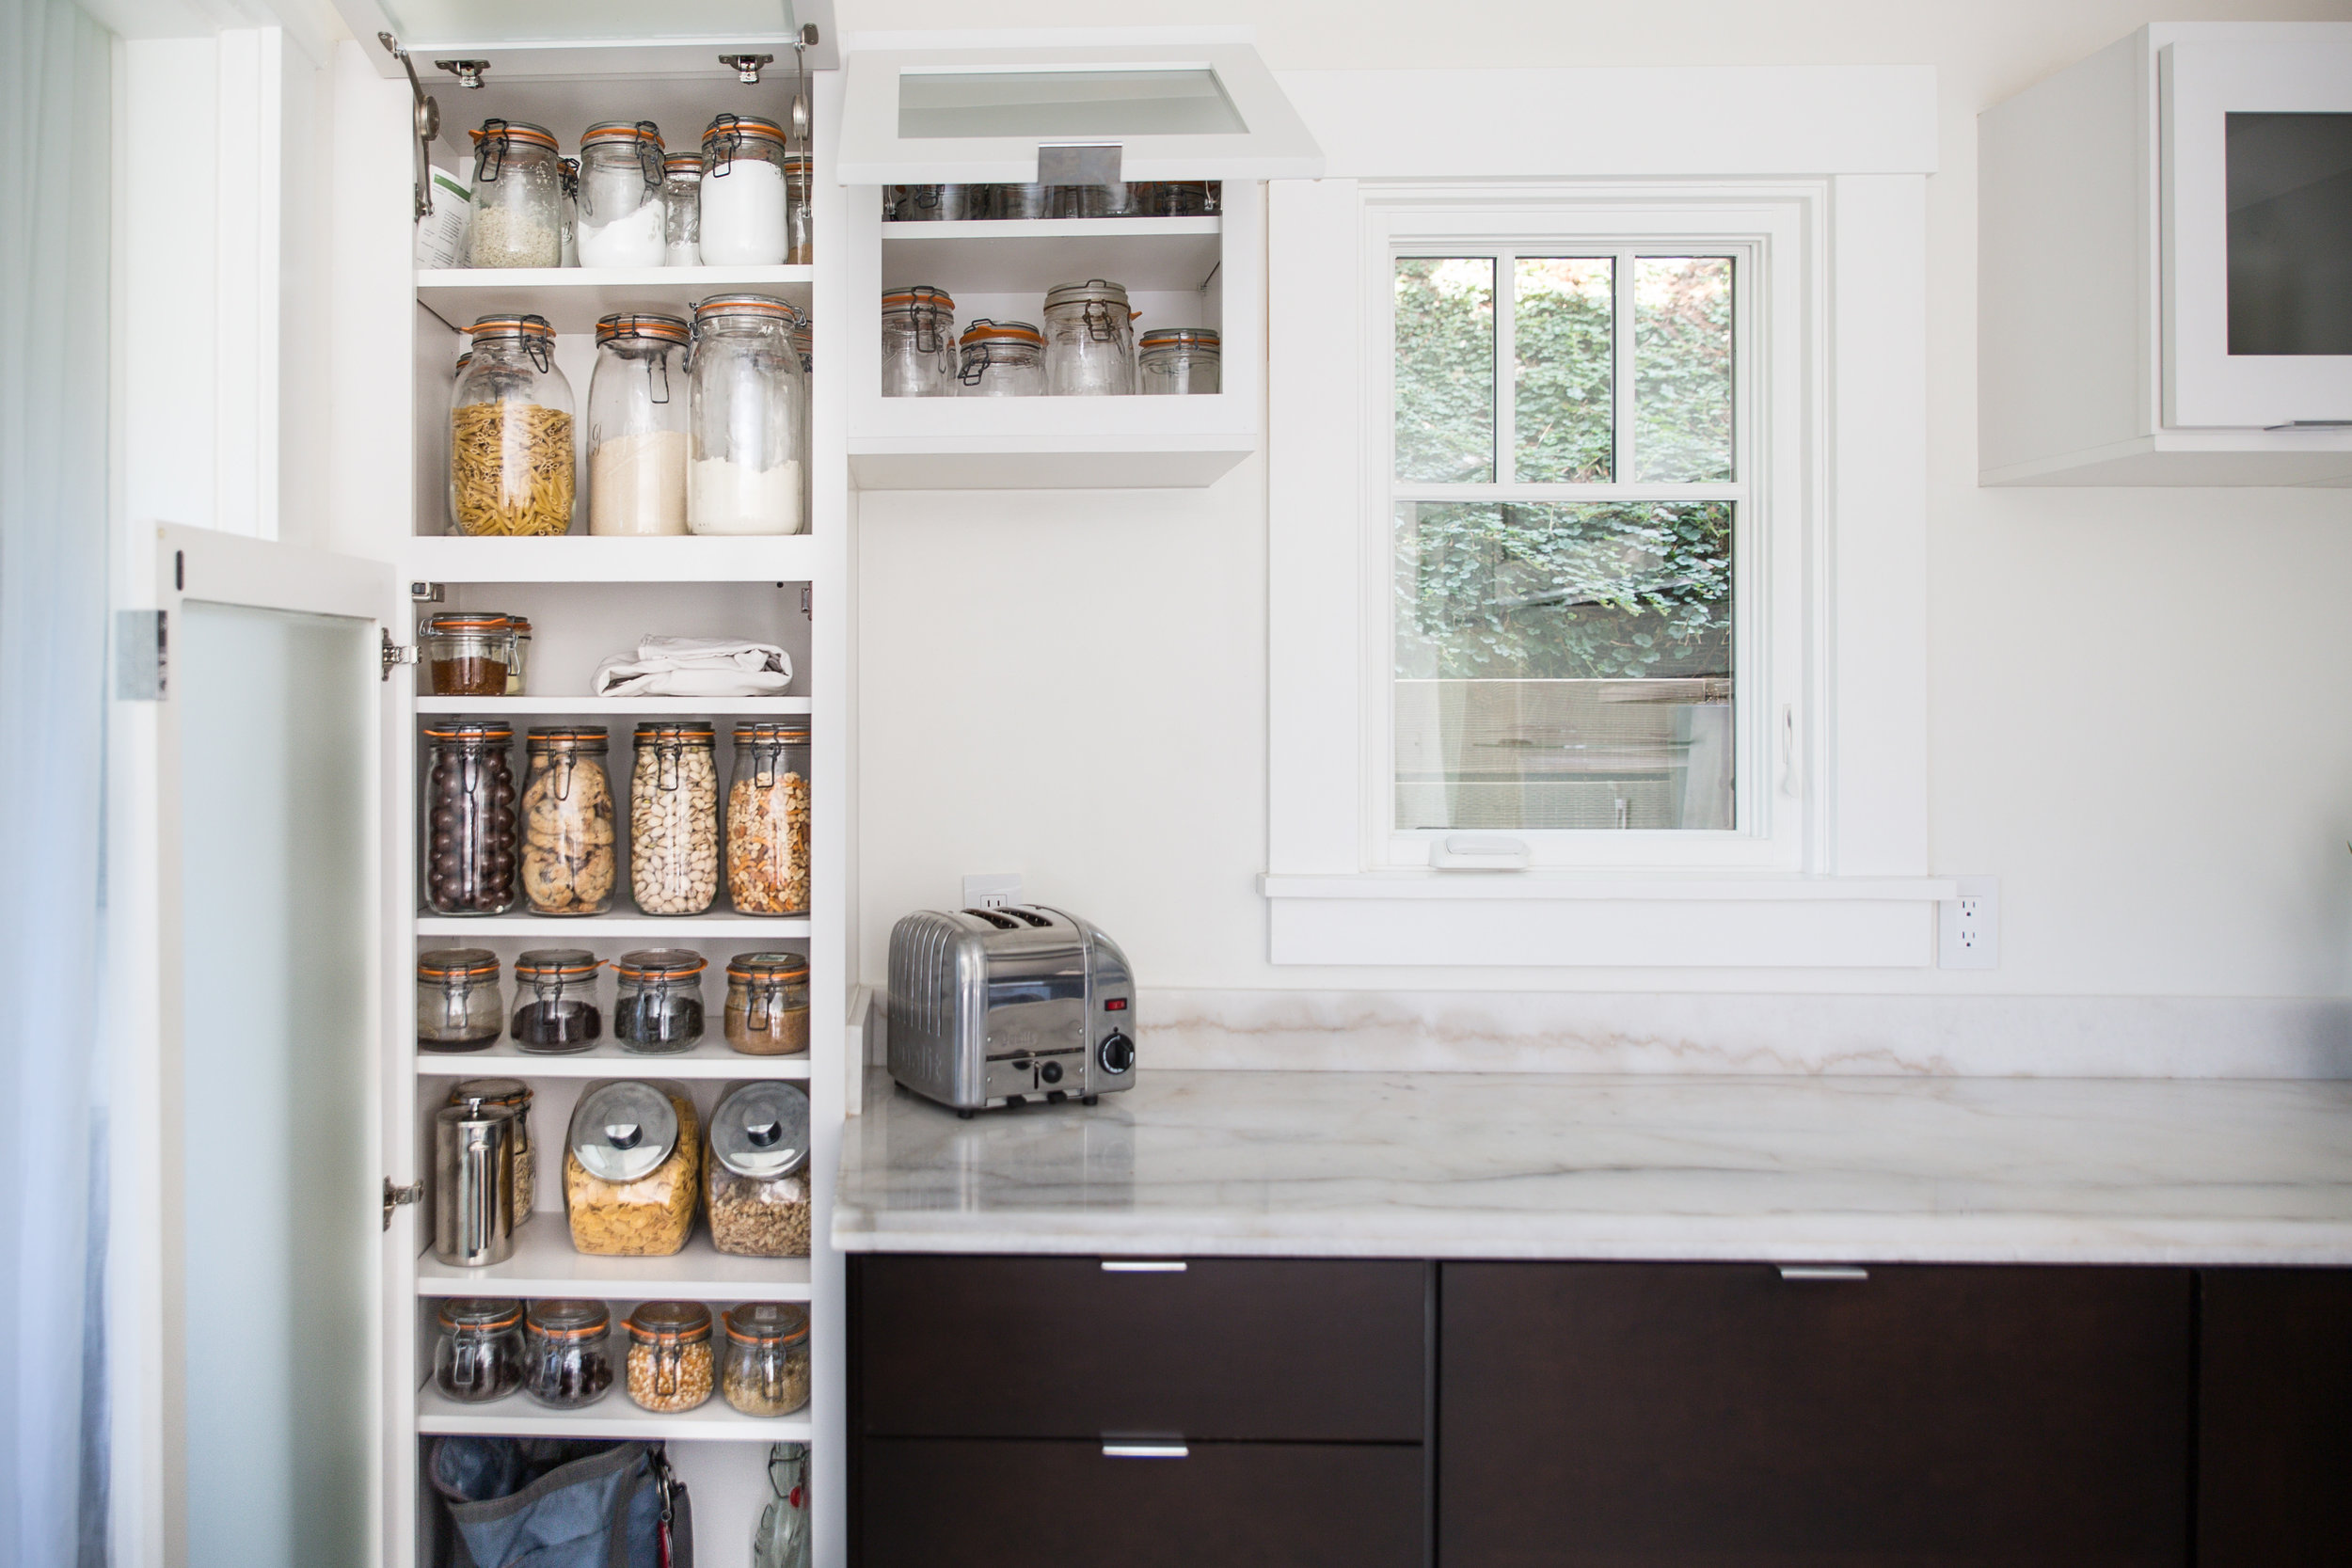 Bea's minimal kitchen and pantry   Photo by Michael Clemens